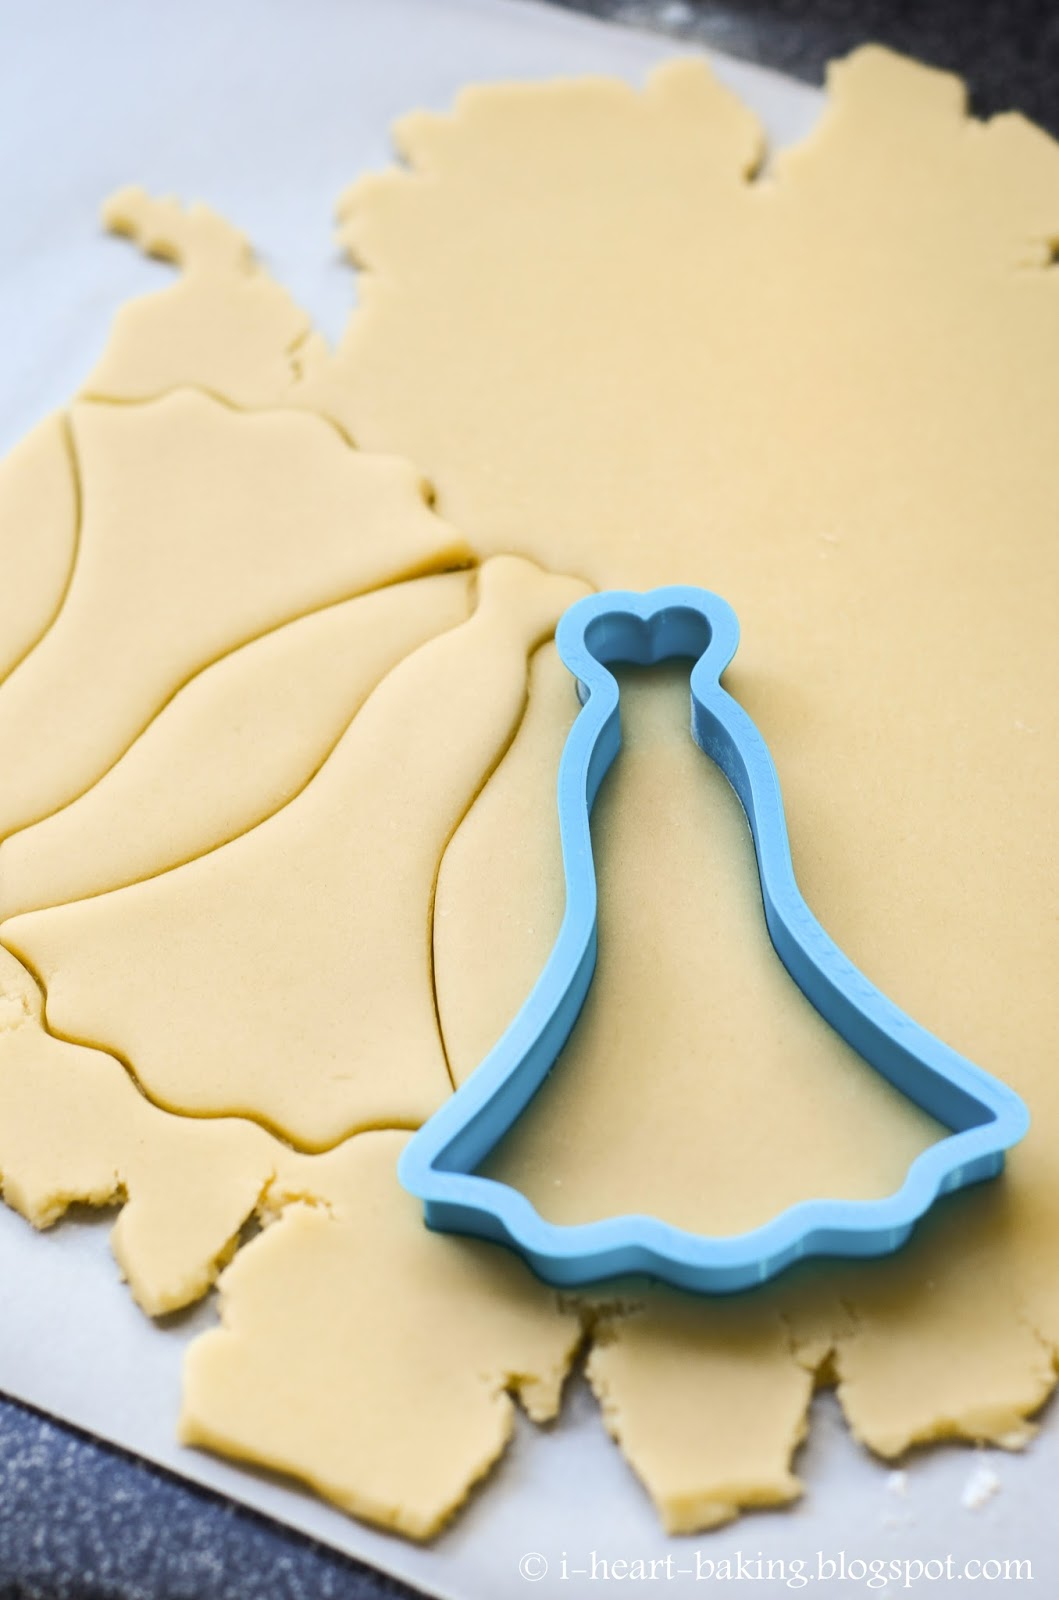 wedding dress cookies with brush wedding dress cookie cutter For the cookies I made a few batches of my trusty sugar cookie dough recipe in my book and used my beautiful new cutter to cut out the shapes